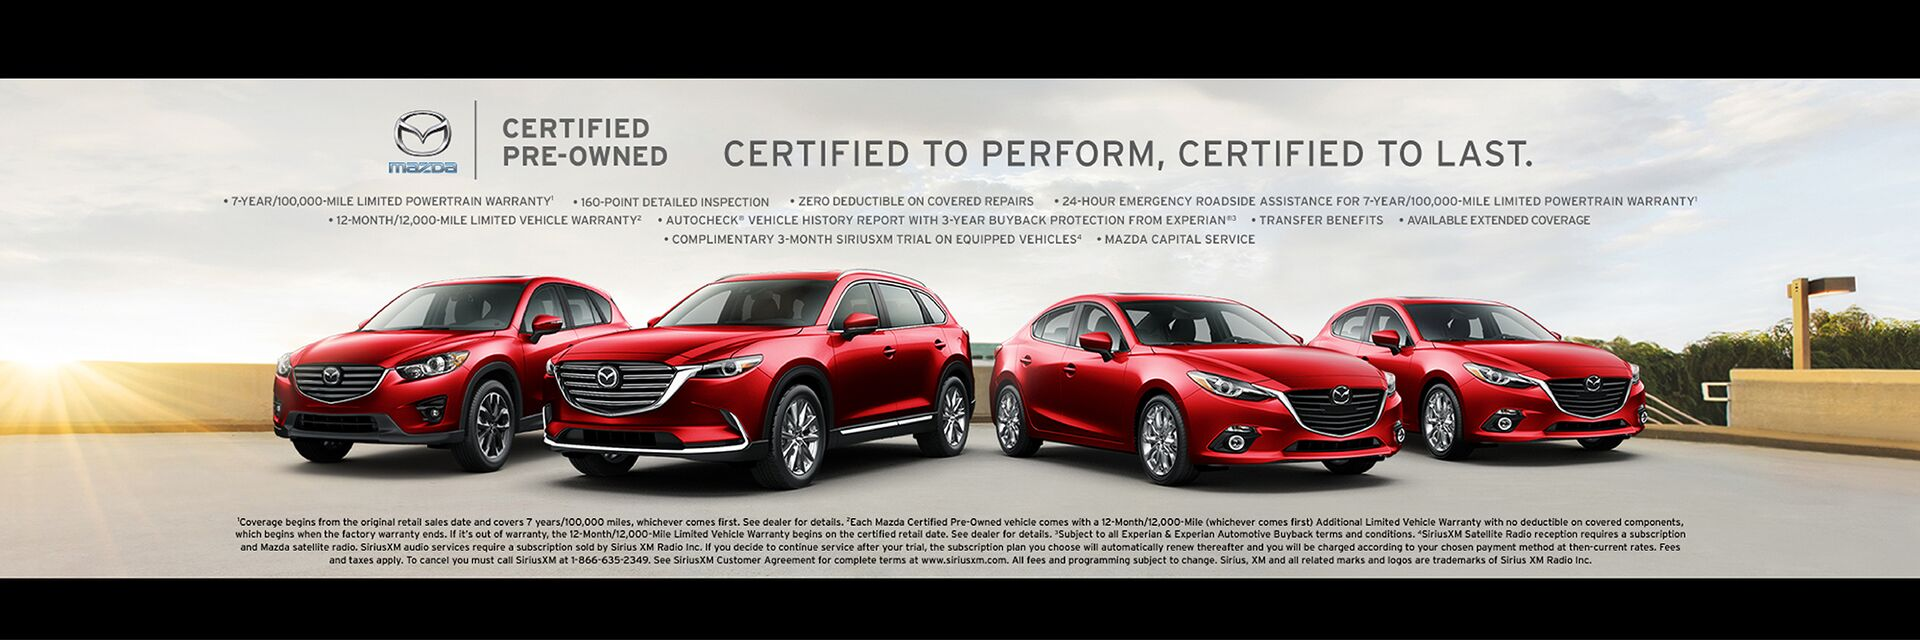 Capistrano Maza Certified Pre-Owned vehicles